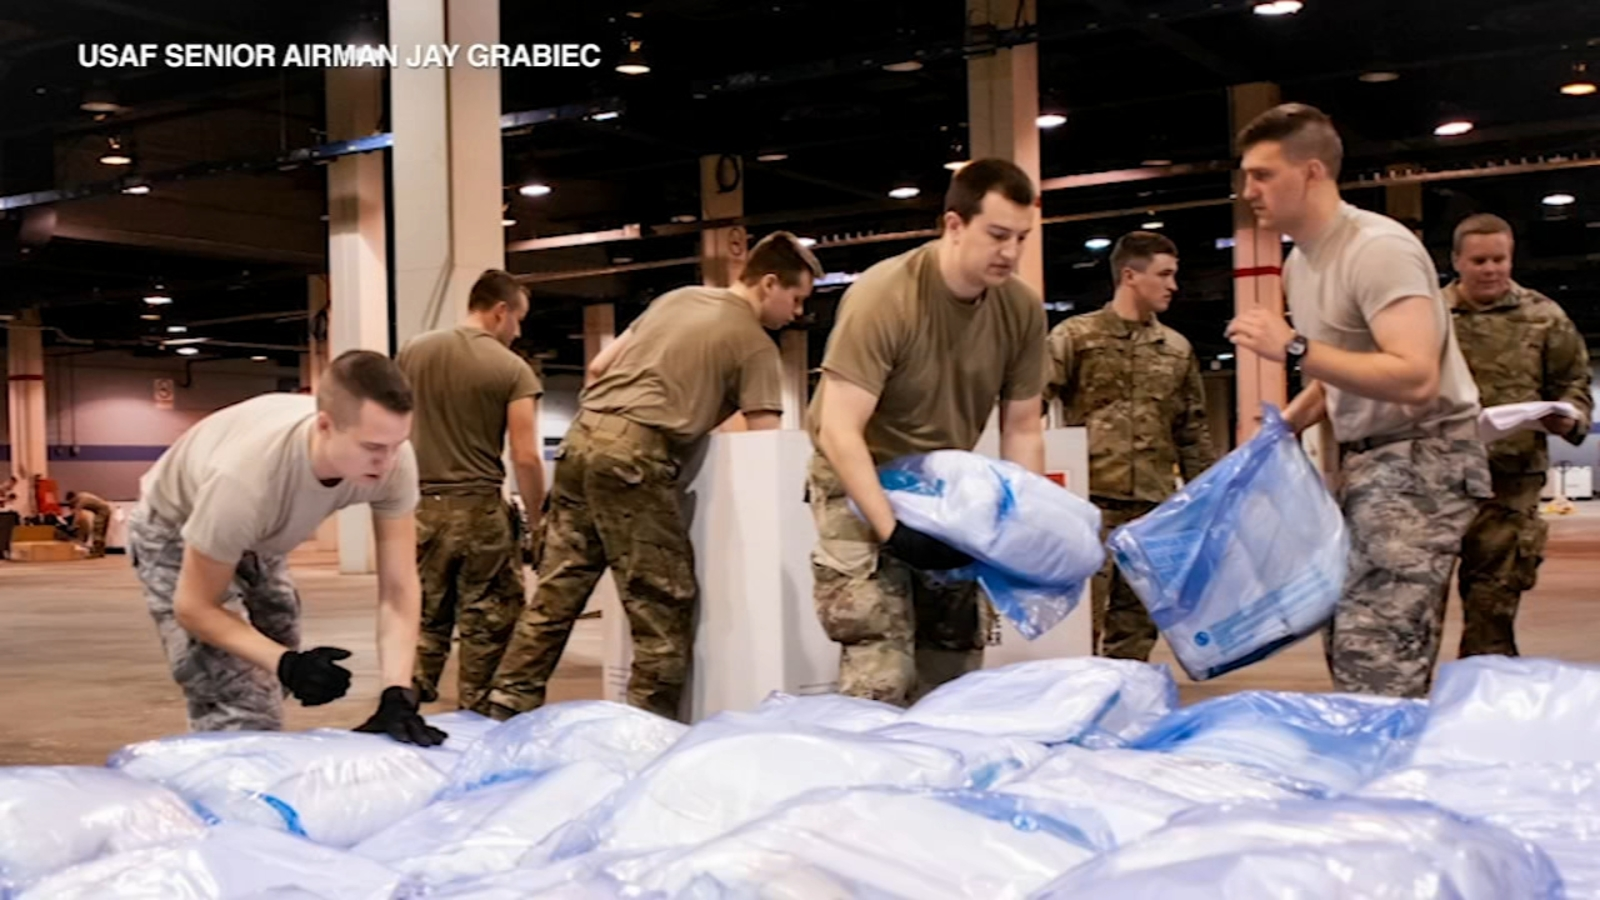 Illinois coronavirus: National Guard races to prepare Illinois' first field hospital as COVID-19 cases surge over 5K with 73 deaths